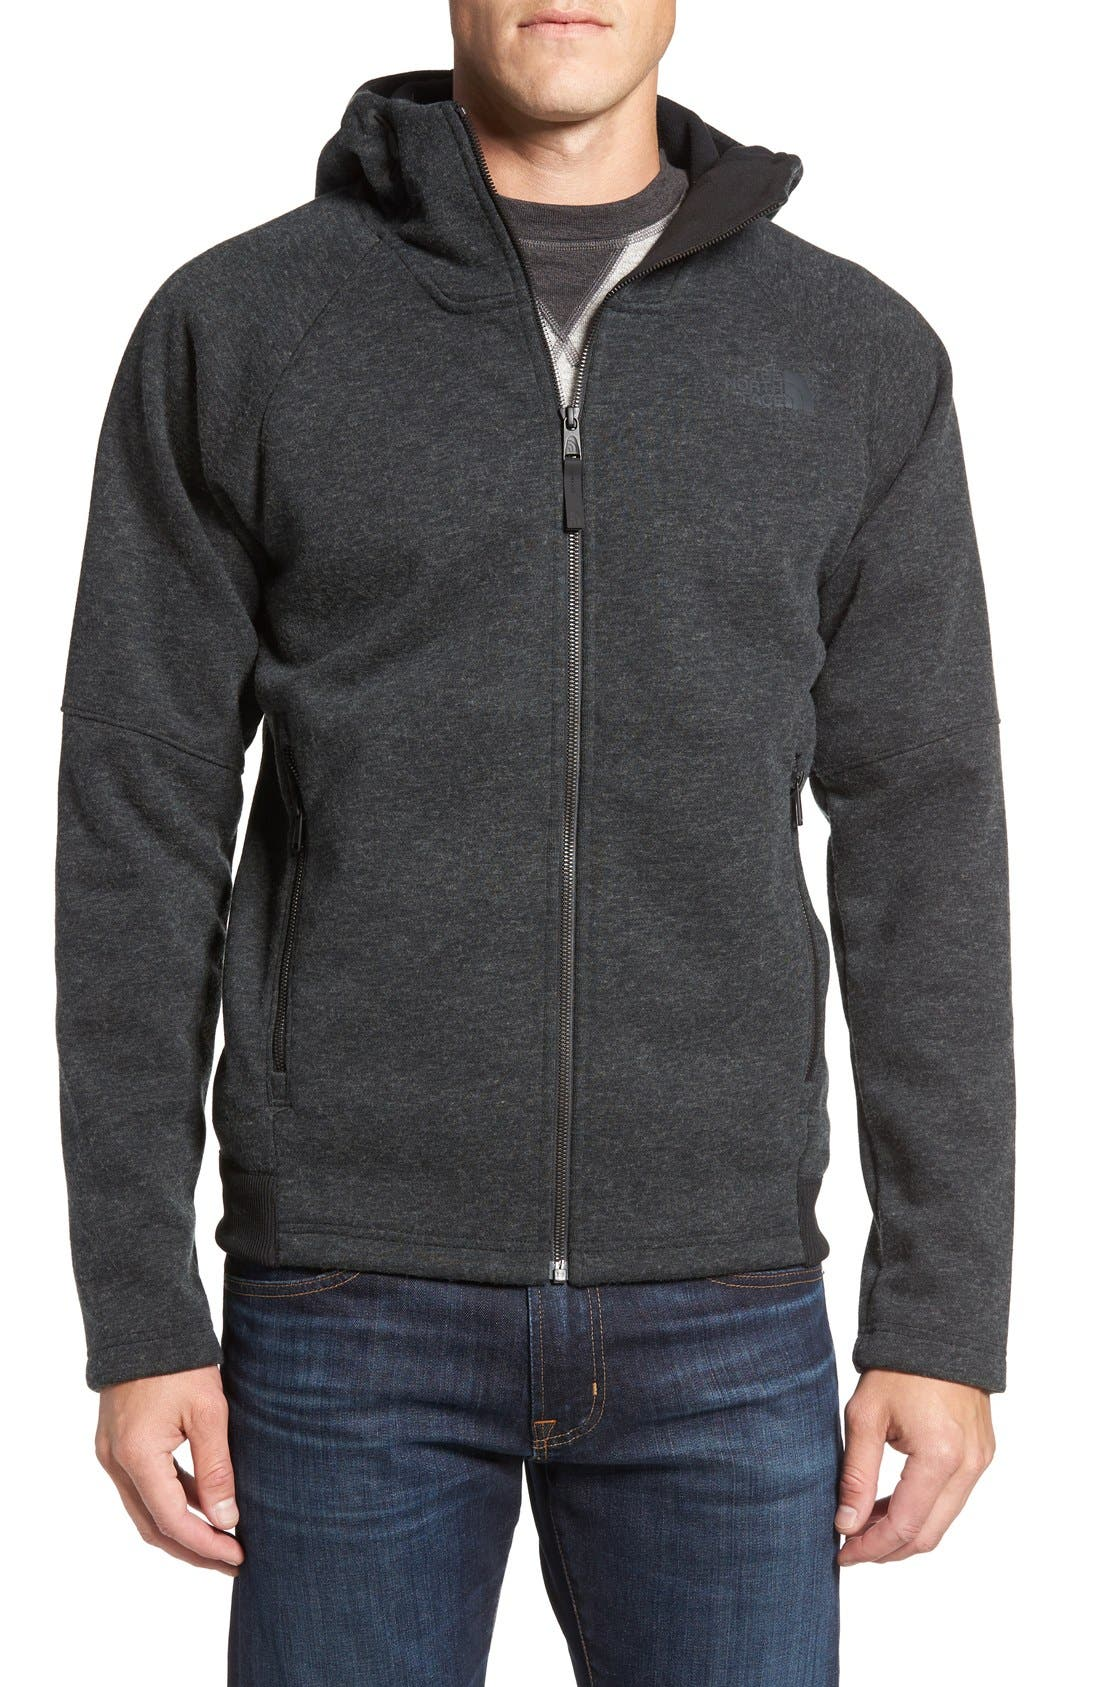 THE NORTH FACE,                             Far Northern Hoodie,                             Main thumbnail 1, color,                             001